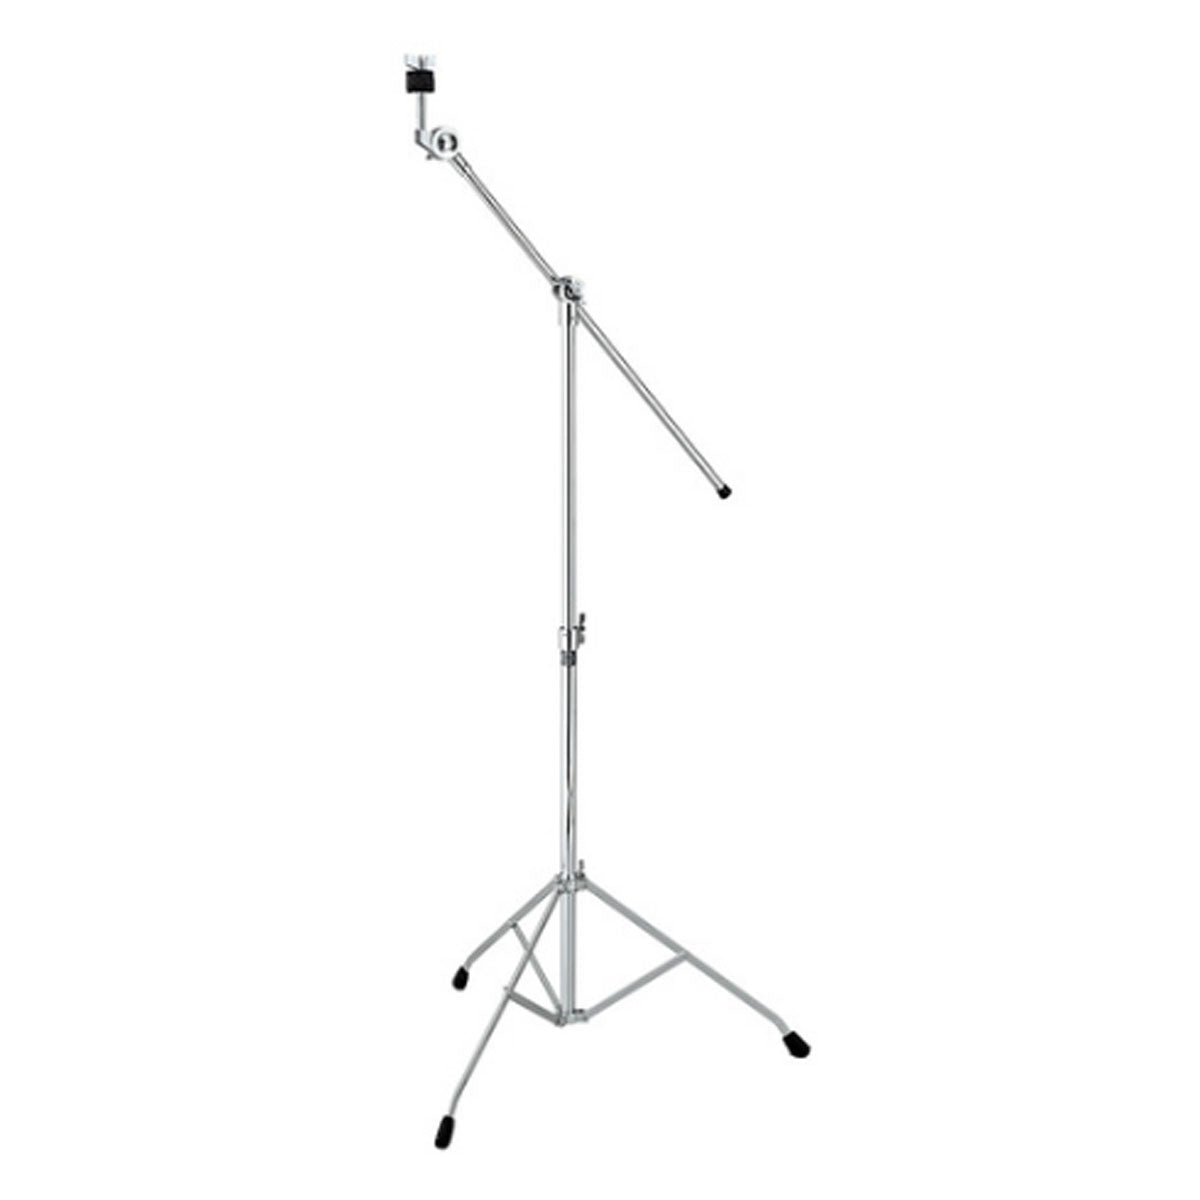 Dixon 9260 Series Boom Cymbal Stand Light-Weight Single Braced - PSY9260I